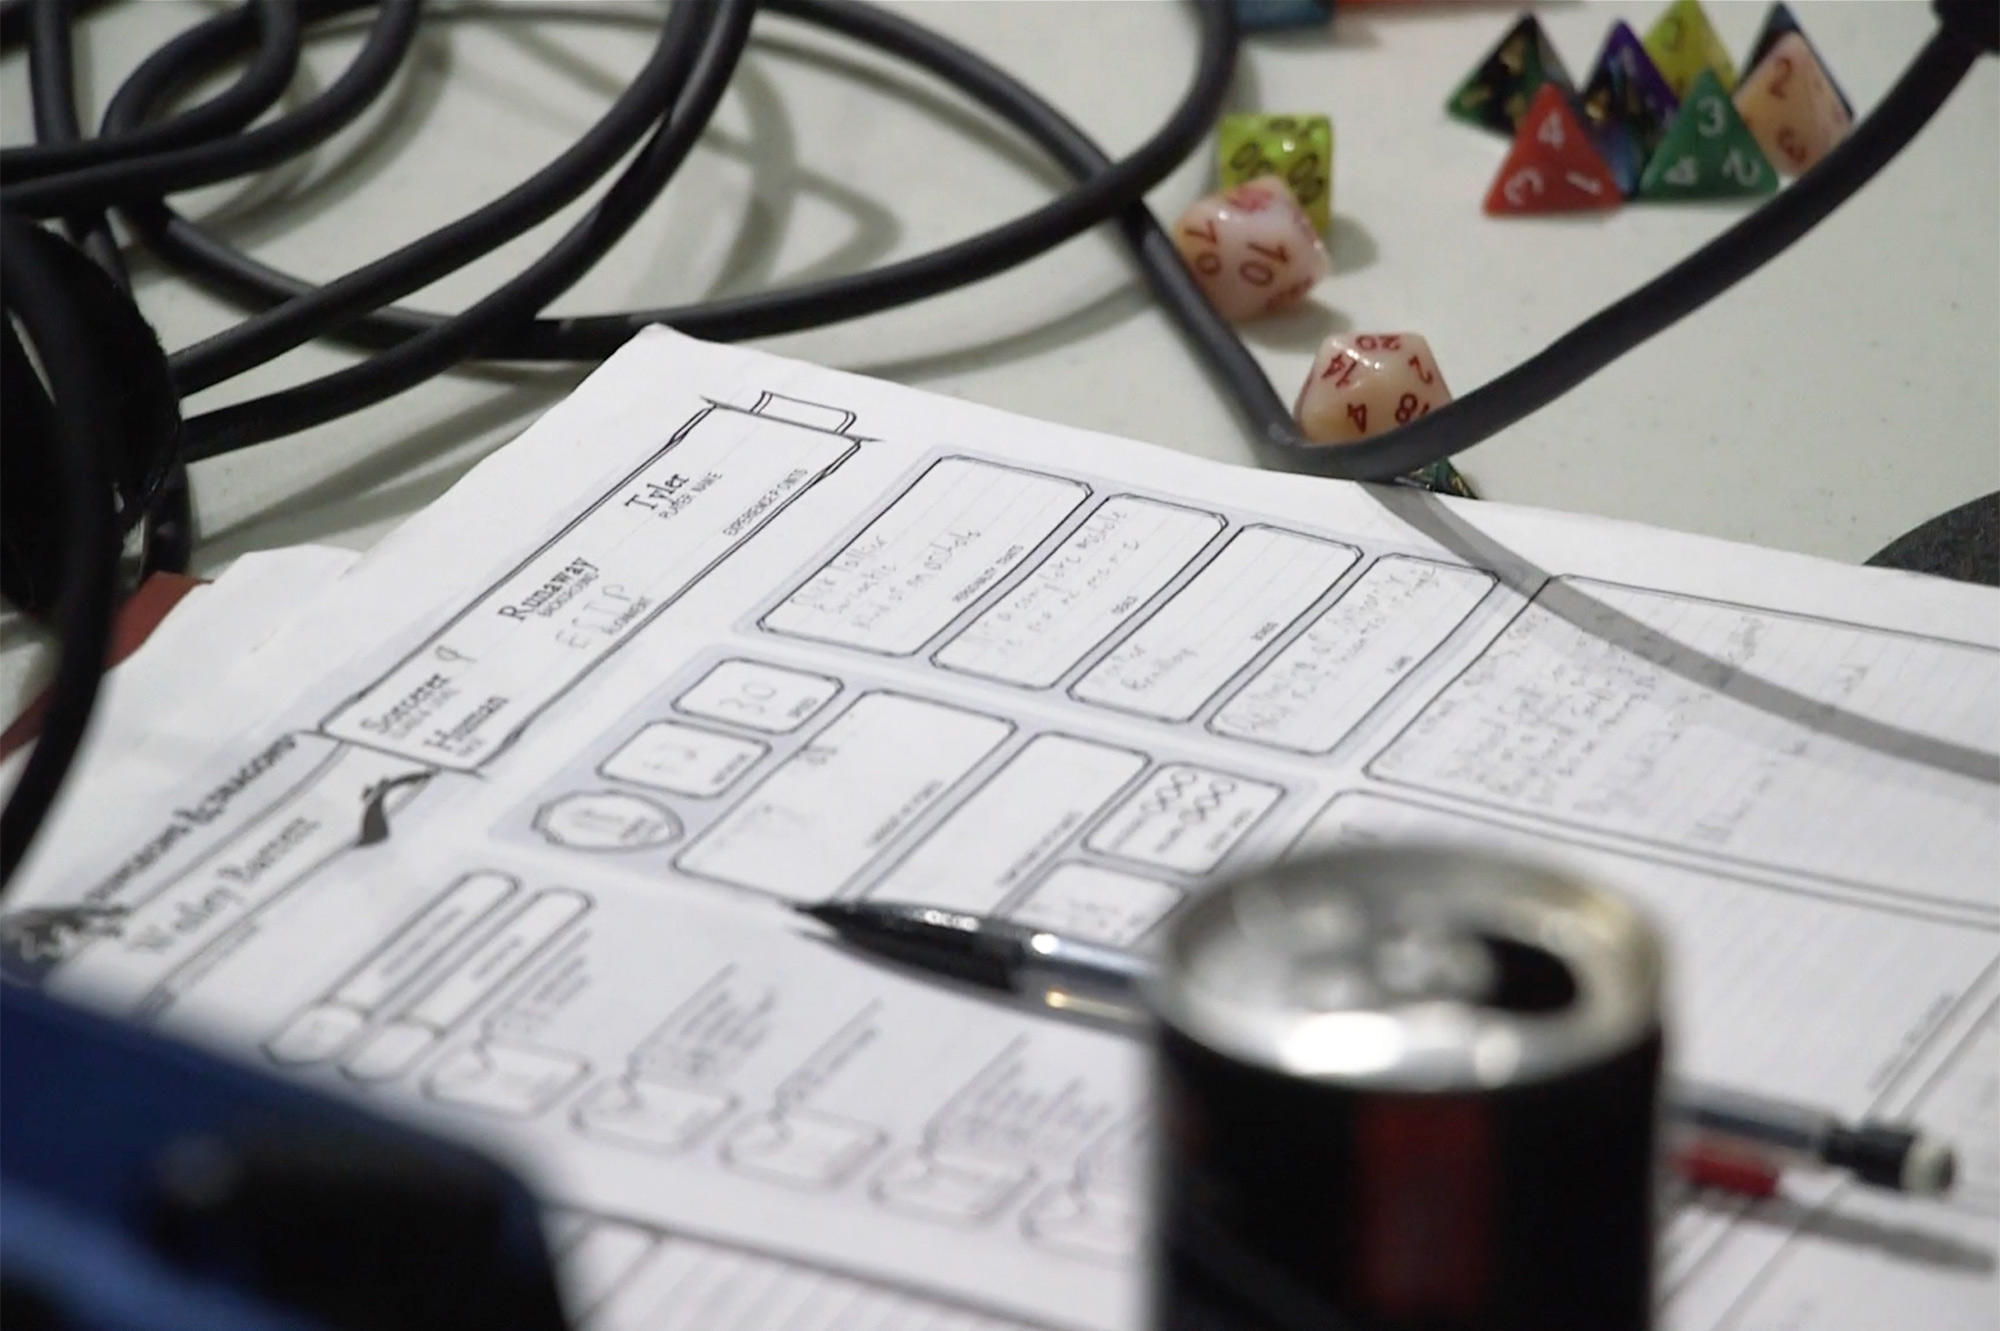 Image of a character sheet, die, mechanical pencil and microphone cords during a recording of the YMBWHWGH podcast. A blurred energy drink can is in the foreground on the bottom right.